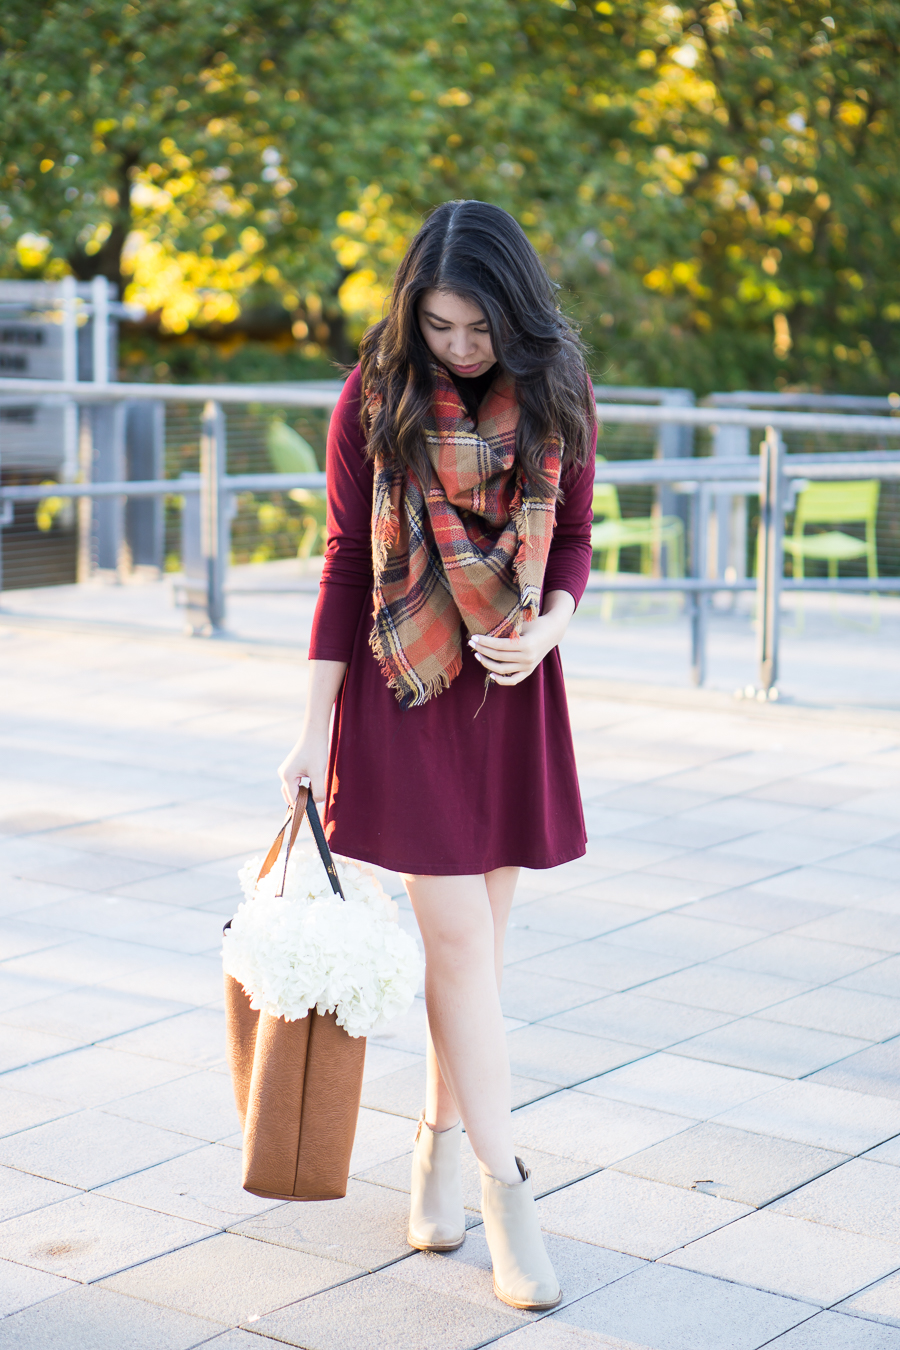 justatinabit-fall-outfit-shein-burgundy-dress-nordstrom-bp-autumn-plaid-scarf-hush-puppies-booties-dress-with-booties-outfit-petite-fashion-blog-1.jpg